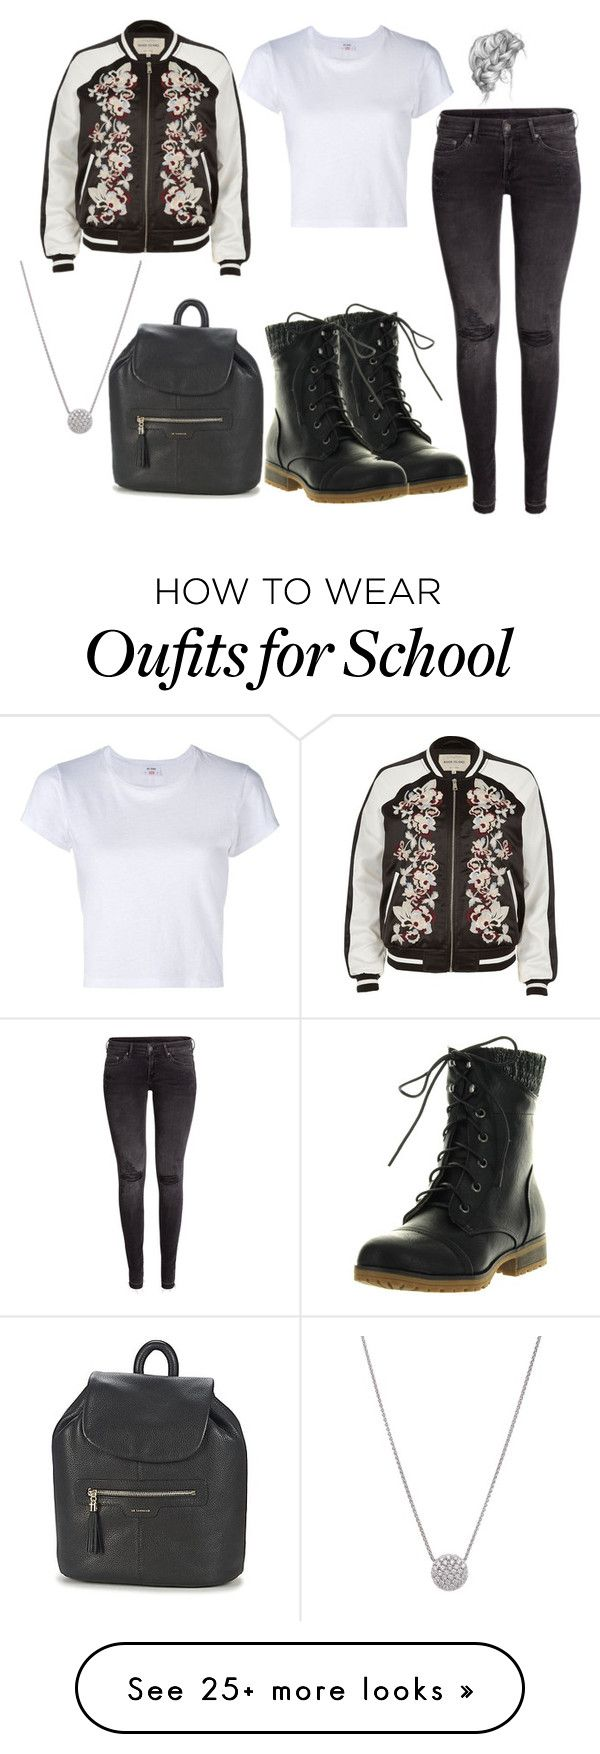 """School"" by rebeccawilson-480 on Polyvore featuring H&M, RE/DONE, Refresh and River Island"